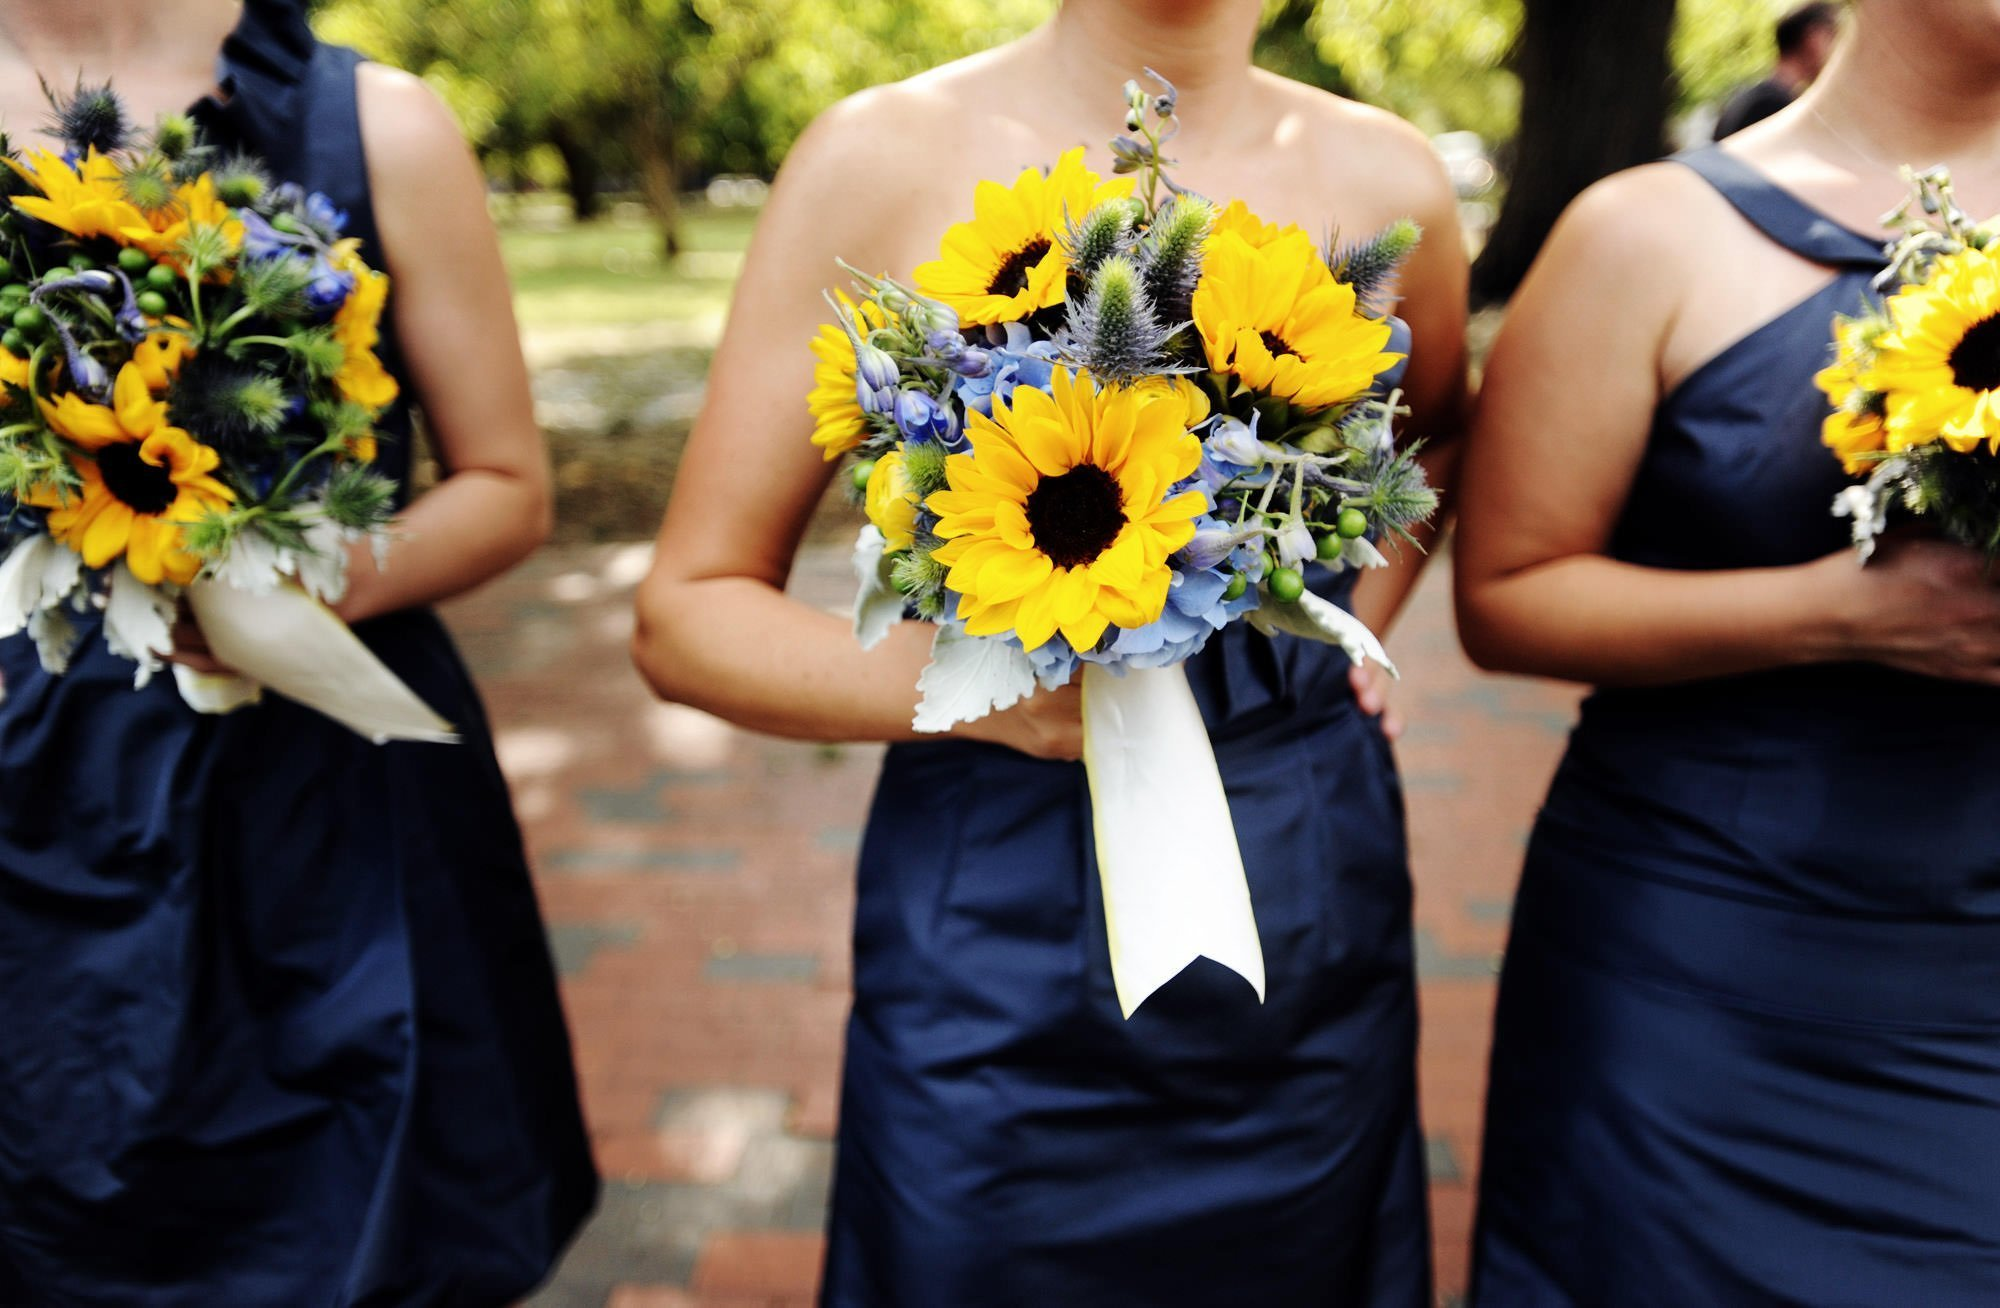 A detail of the bridesmaids bouquets.